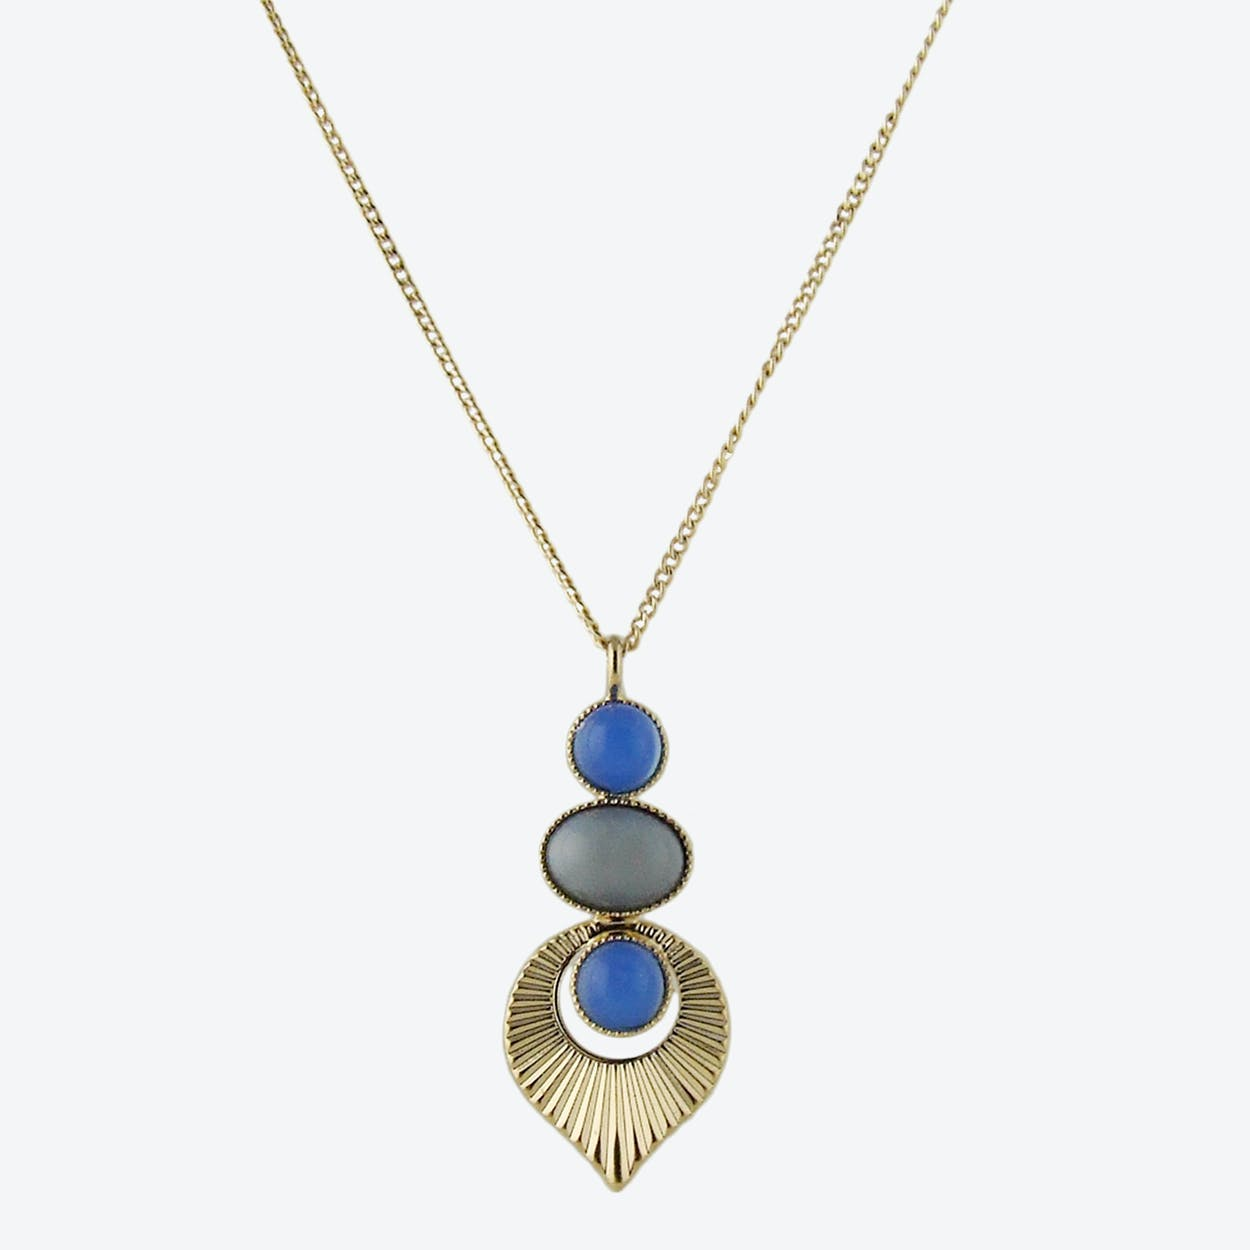 Gold Art Deco Style Pendant Necklace in Grey and Blue